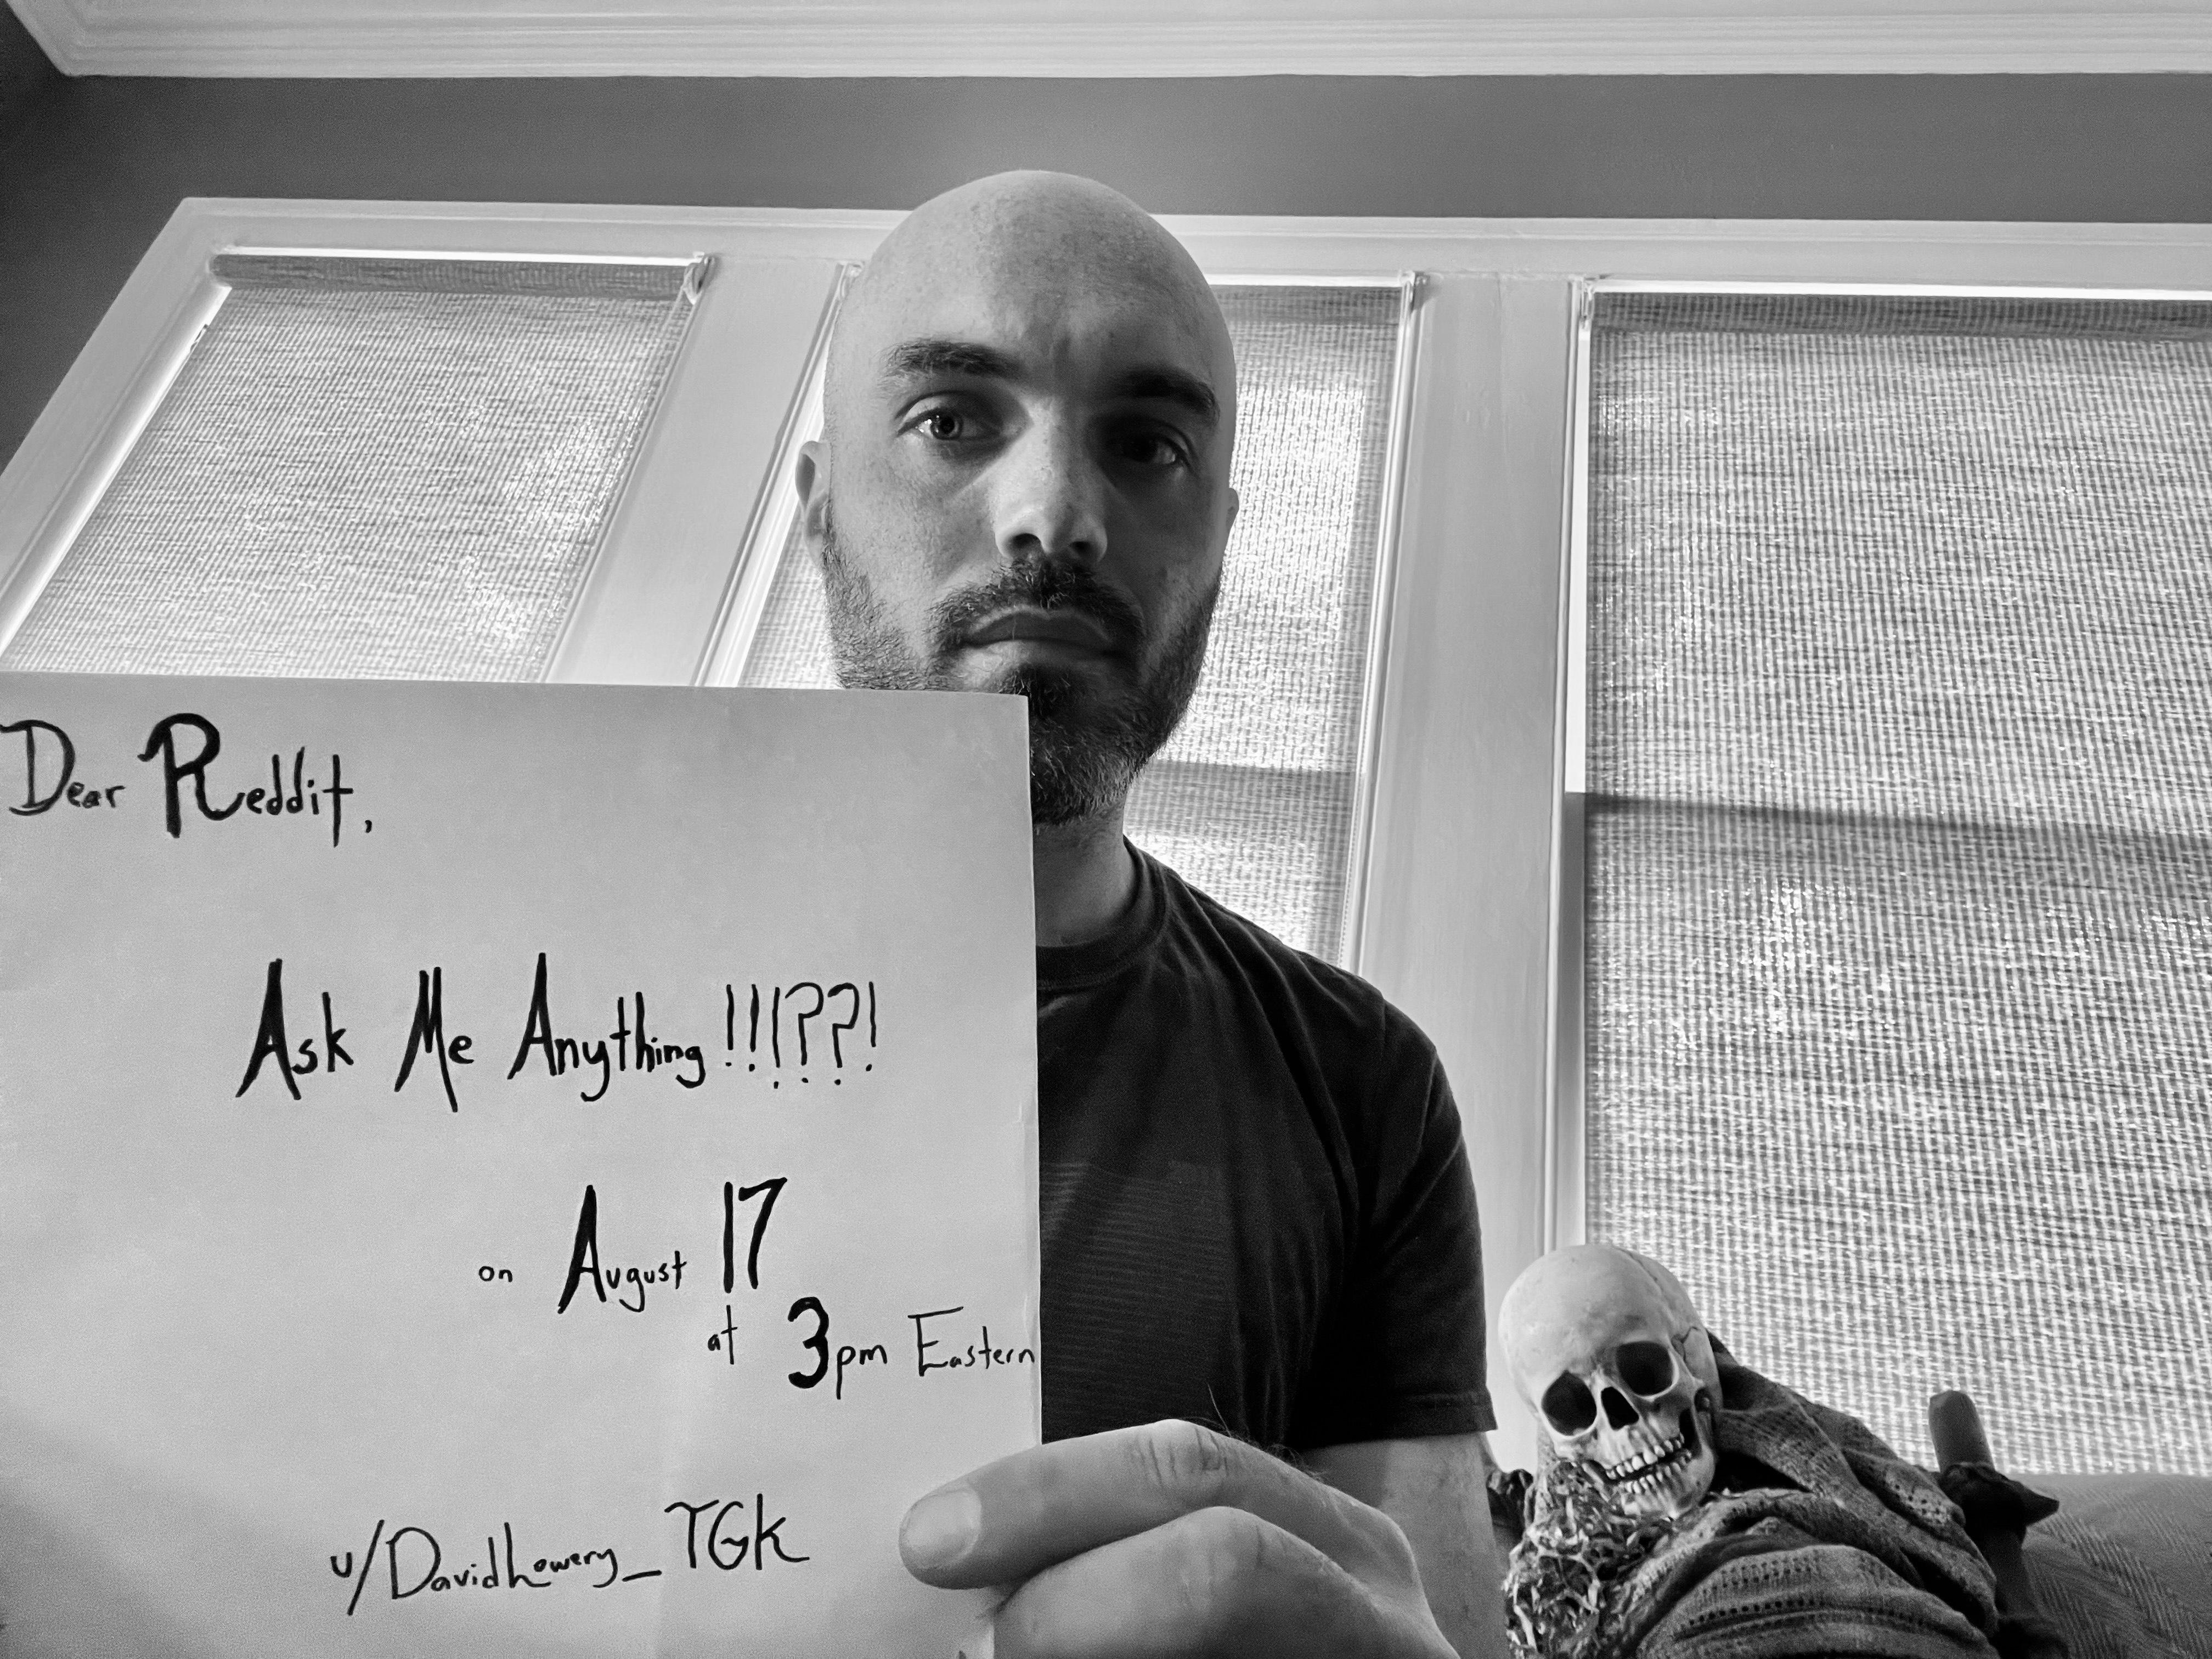 David Lowery participated in a Reddit AMA on Tuesday August 17, 2021.